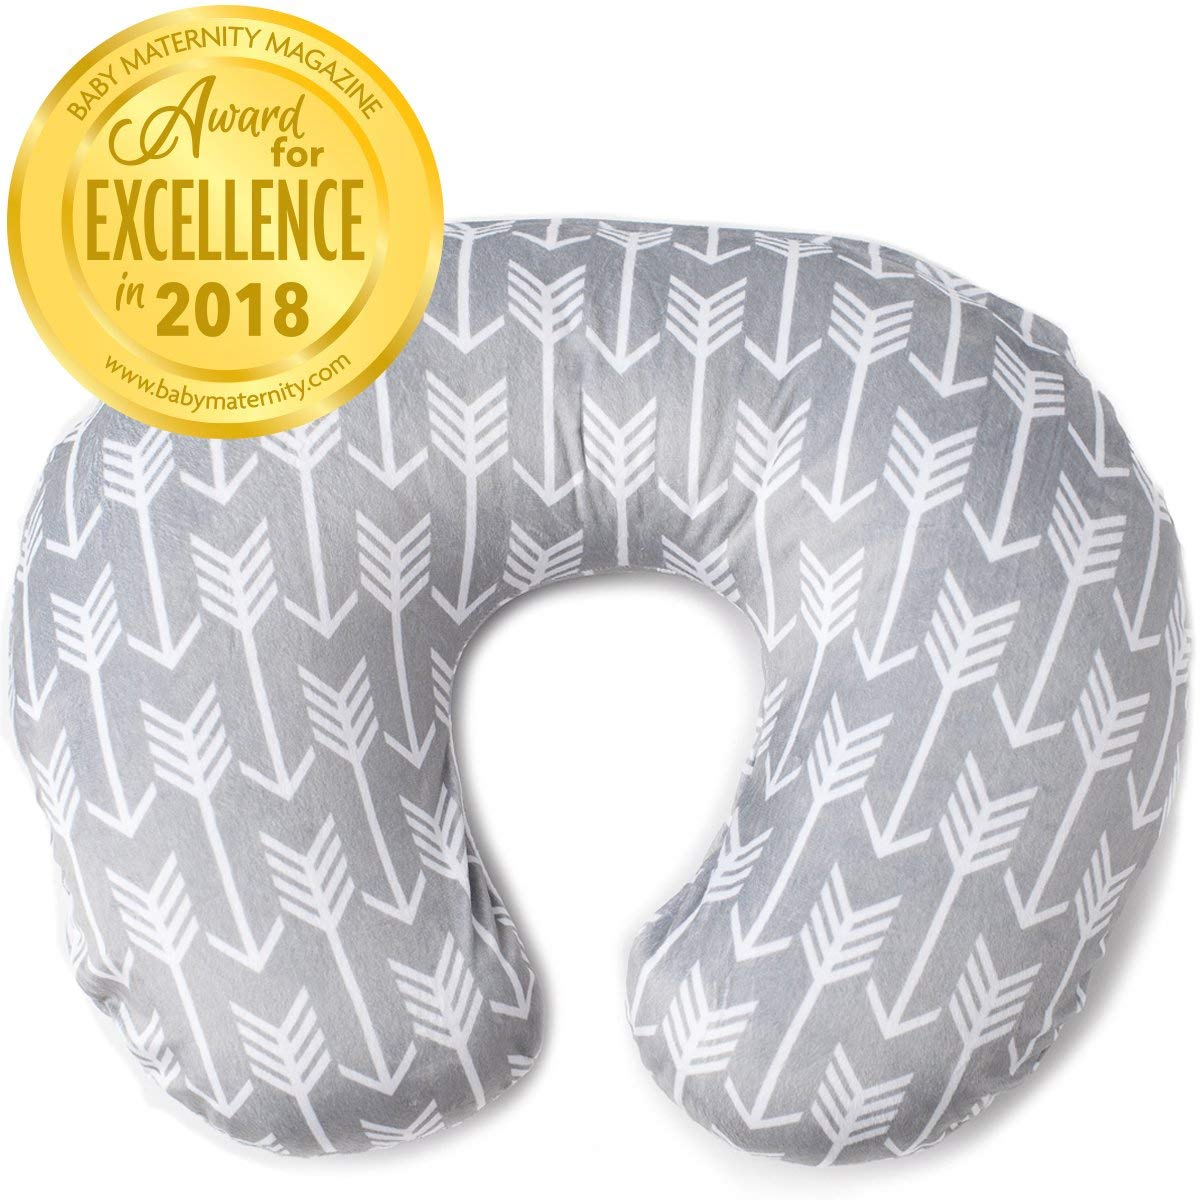 Minky Nursing Pillow Cover | Arrow Pattern Slipcover | Best for Breastfeeding Moms | Soft Fabric Fits Snug On Infant Nursing Pillows to Aid Mothers While Breast Feeding | Great Baby Shower Gift by Kids N' Such